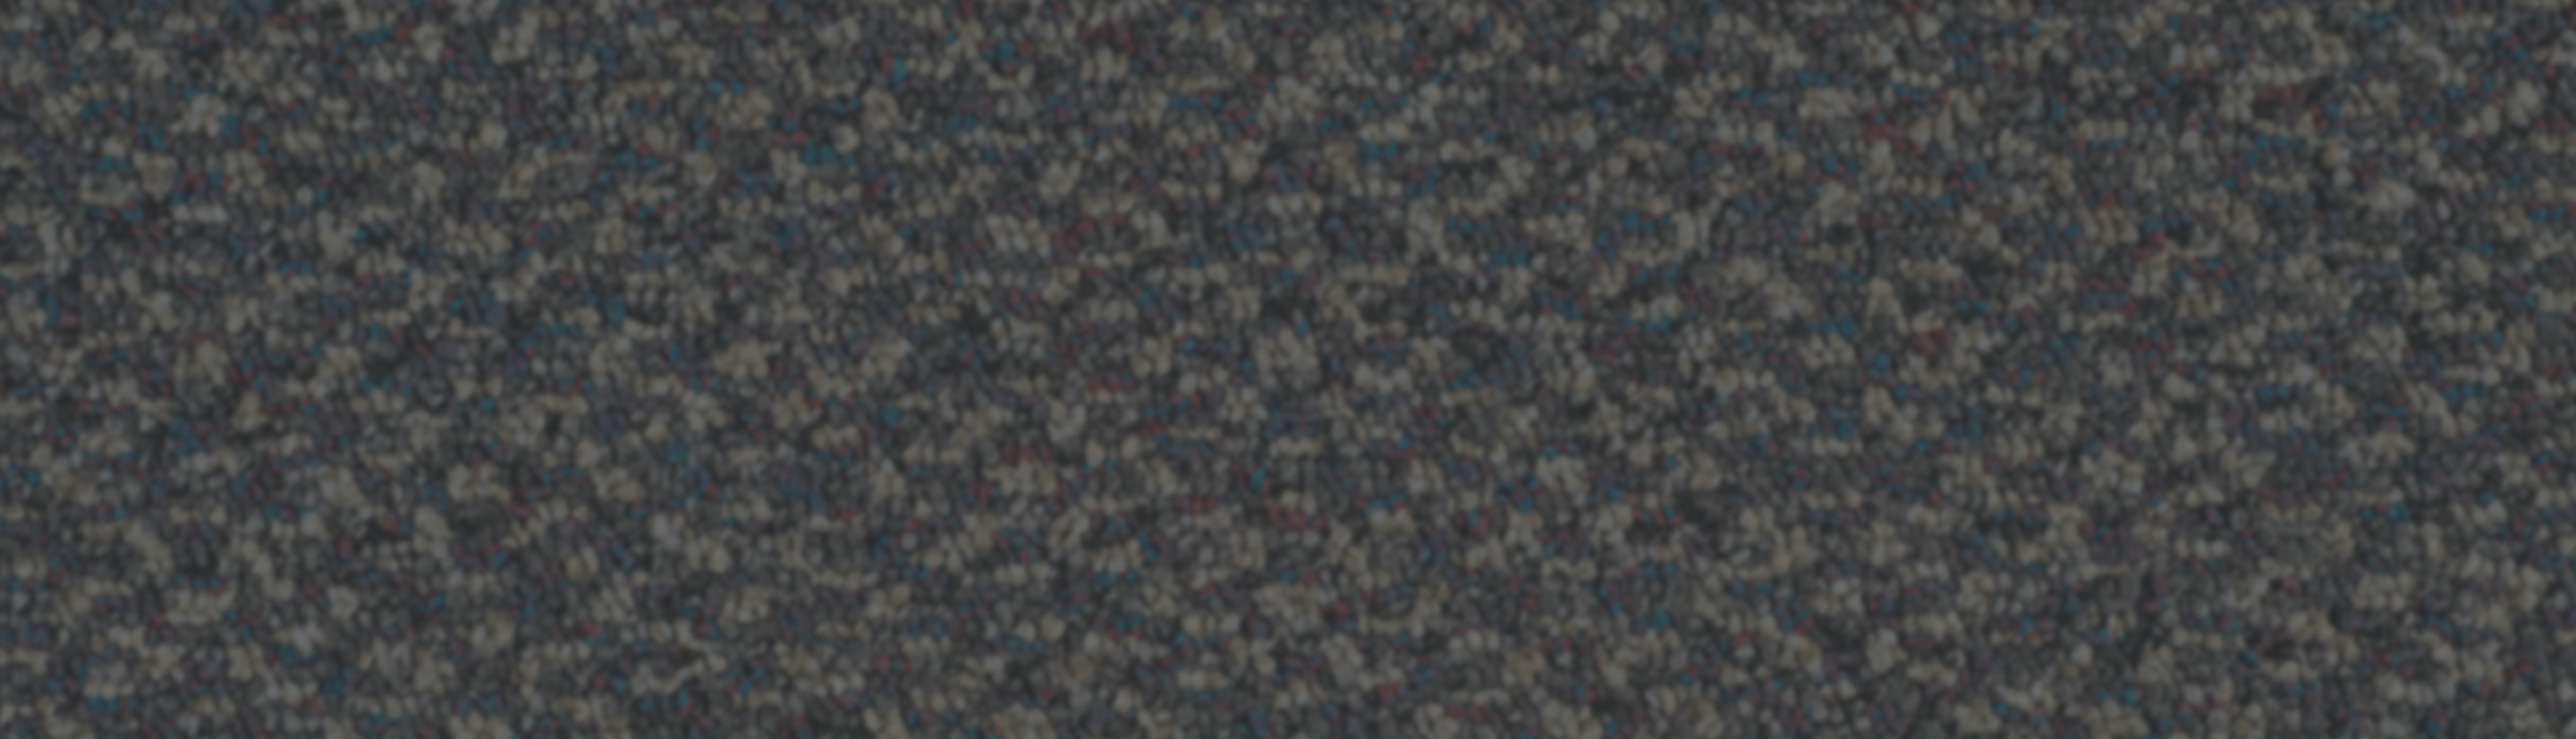 CGR_Home_Slider_Carpet_2@2x